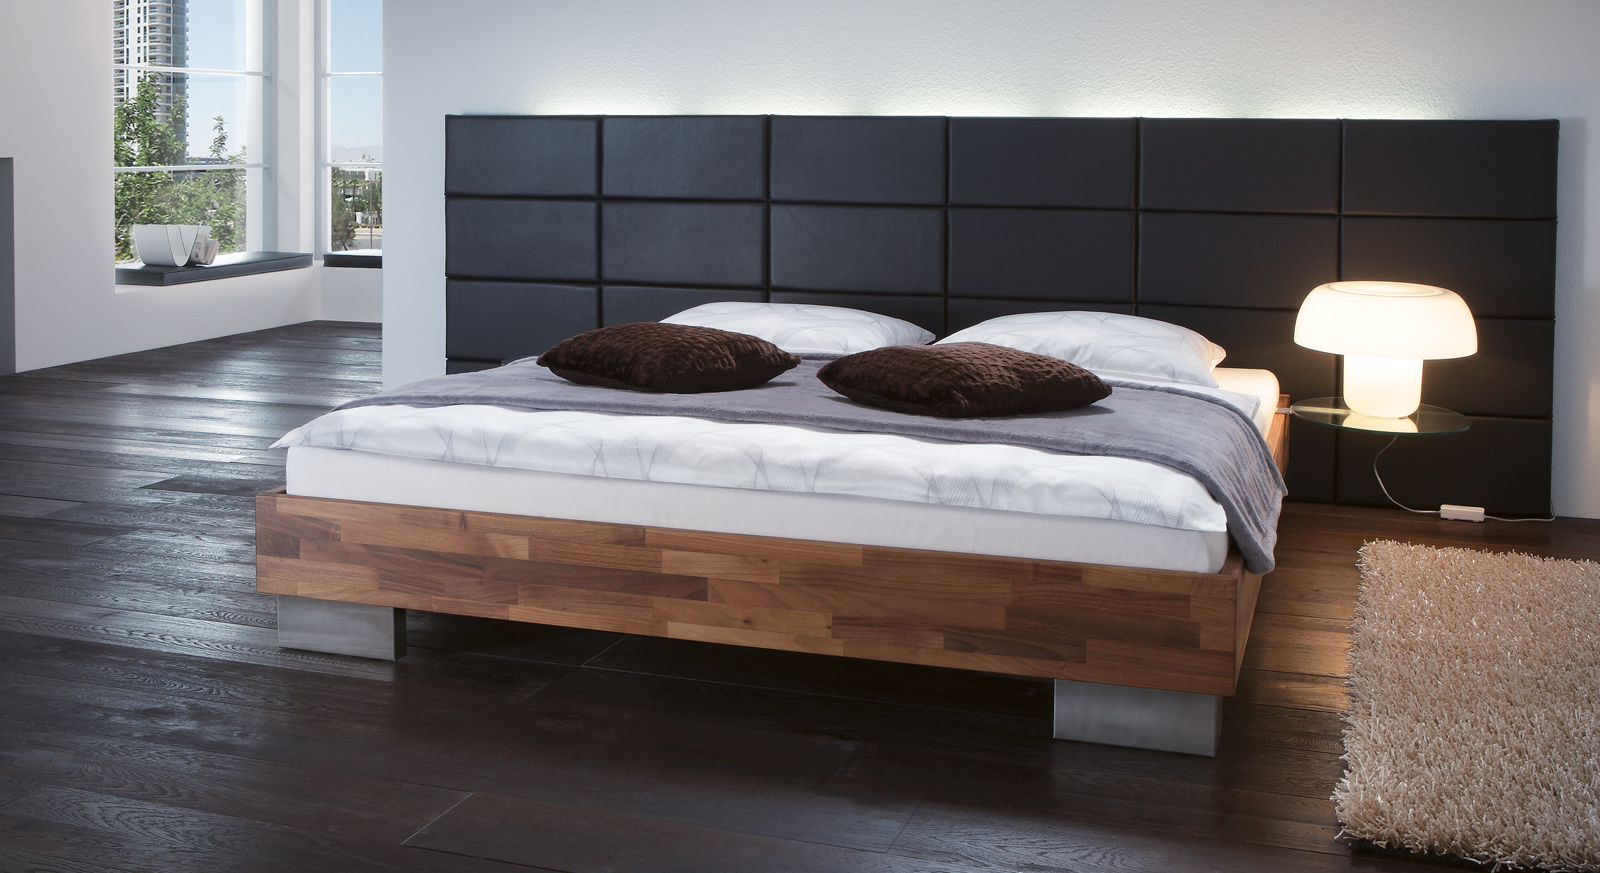 bett mit minimalistisch grauem design bilder. Black Bedroom Furniture Sets. Home Design Ideas